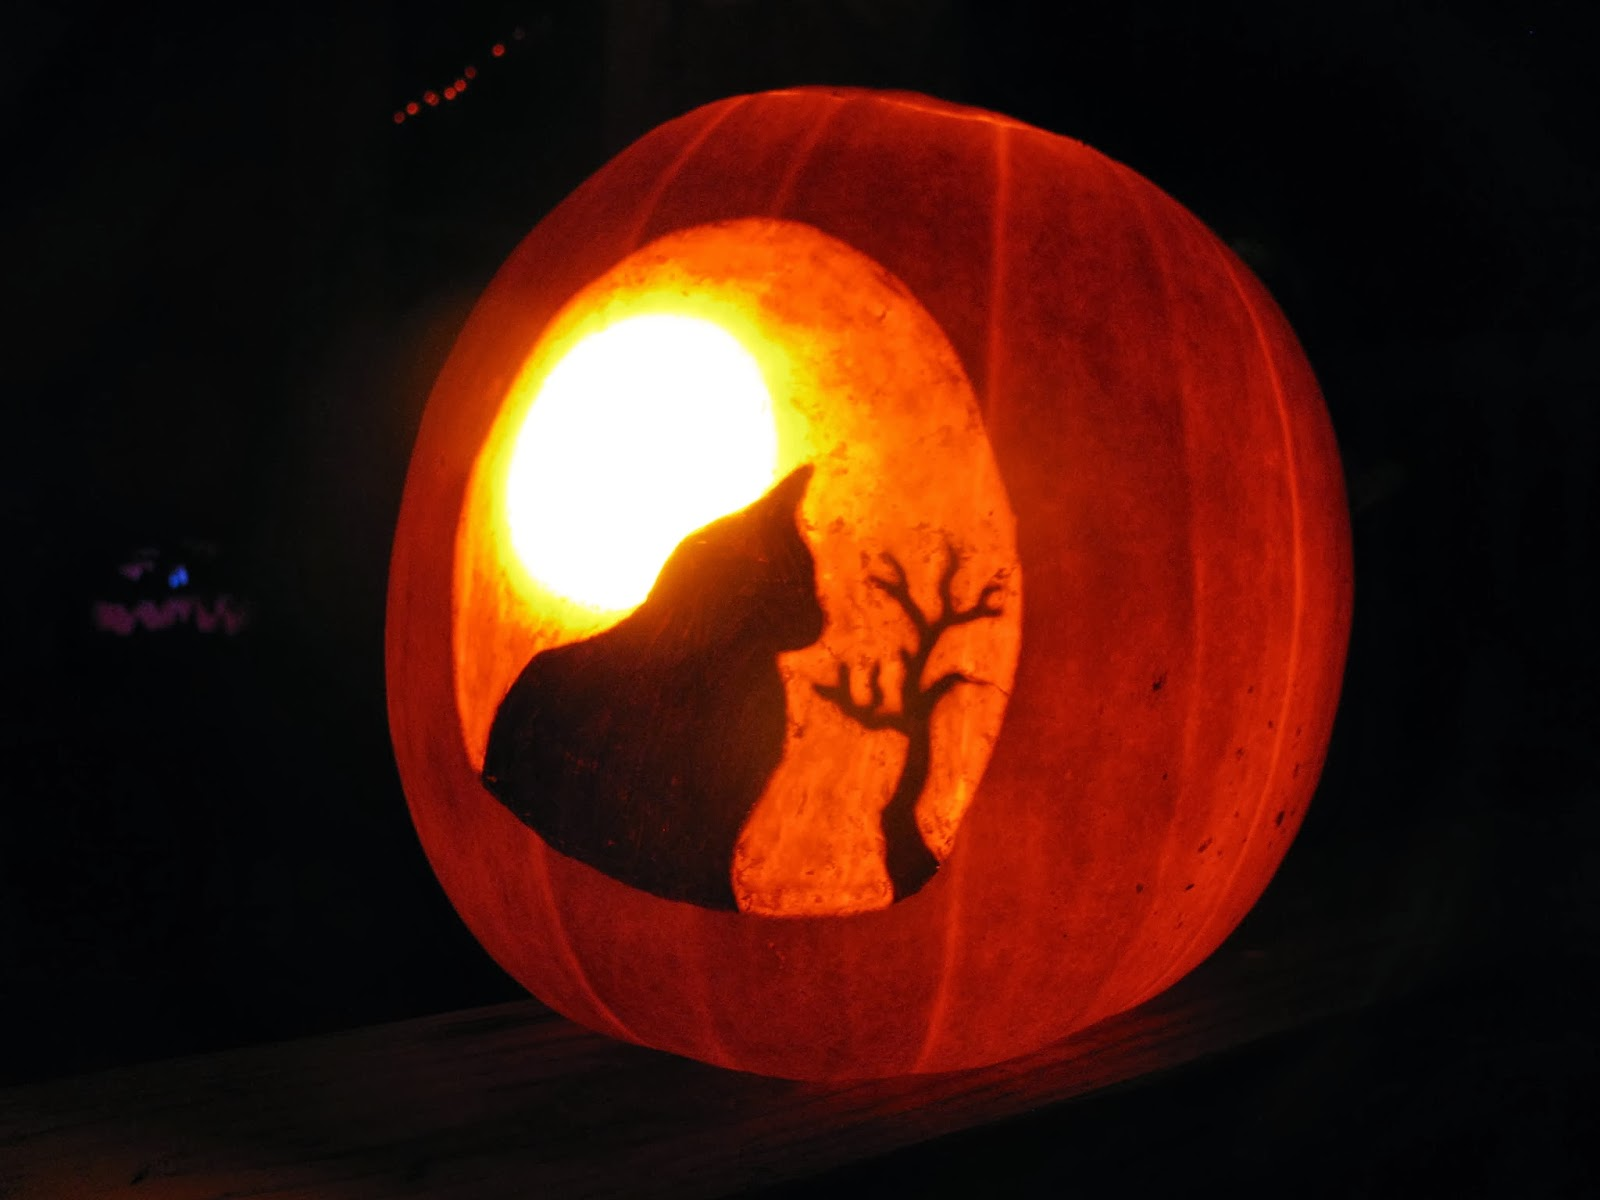 Pumpkin carving ideas for halloween 2017 some of the best Halloween pumpkin carving ideas